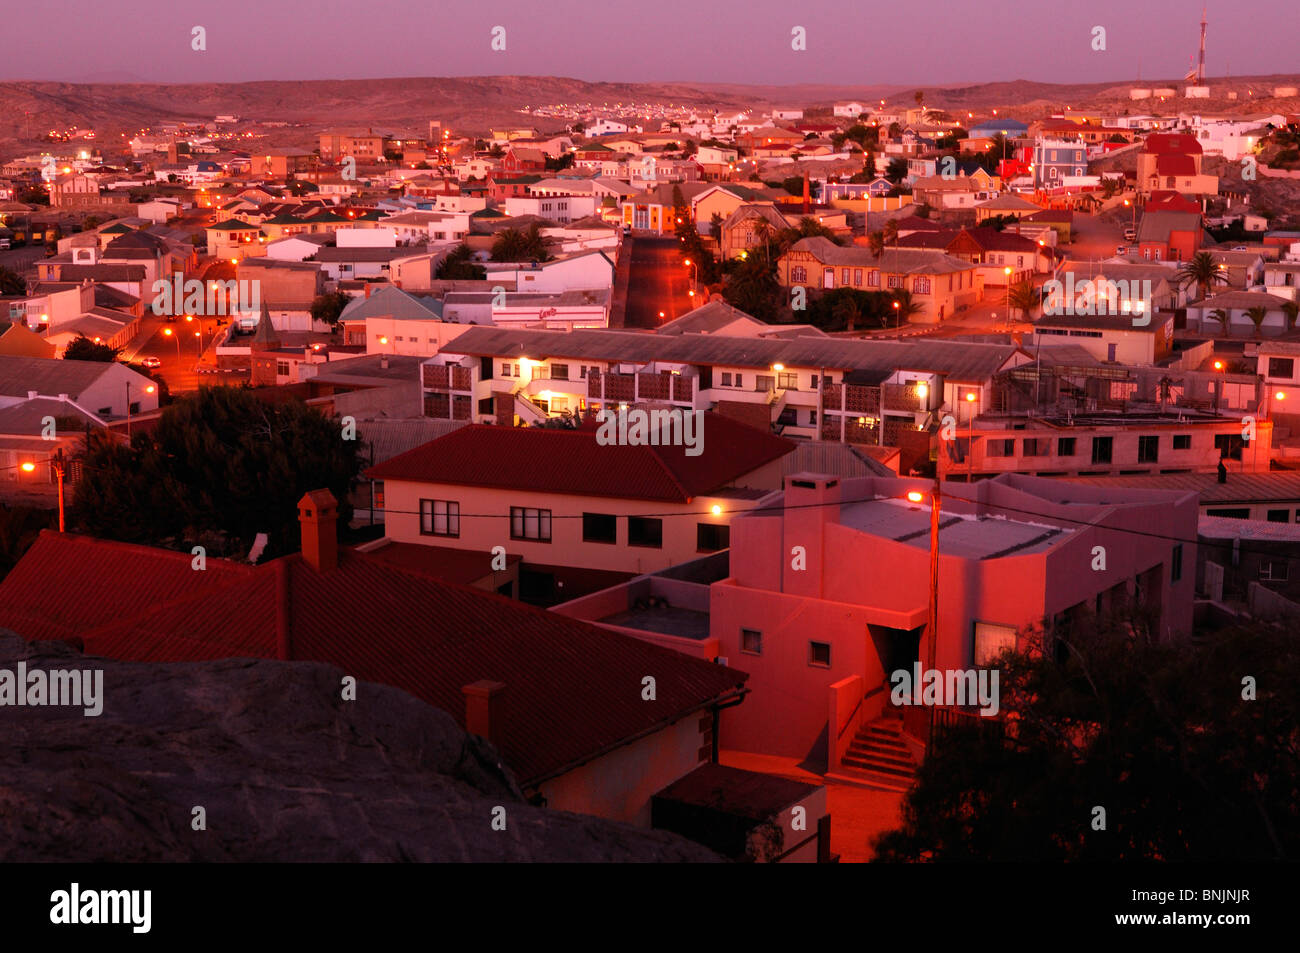 Evening Luderitz Karas Region Namibia Africa Travel town - Stock Image